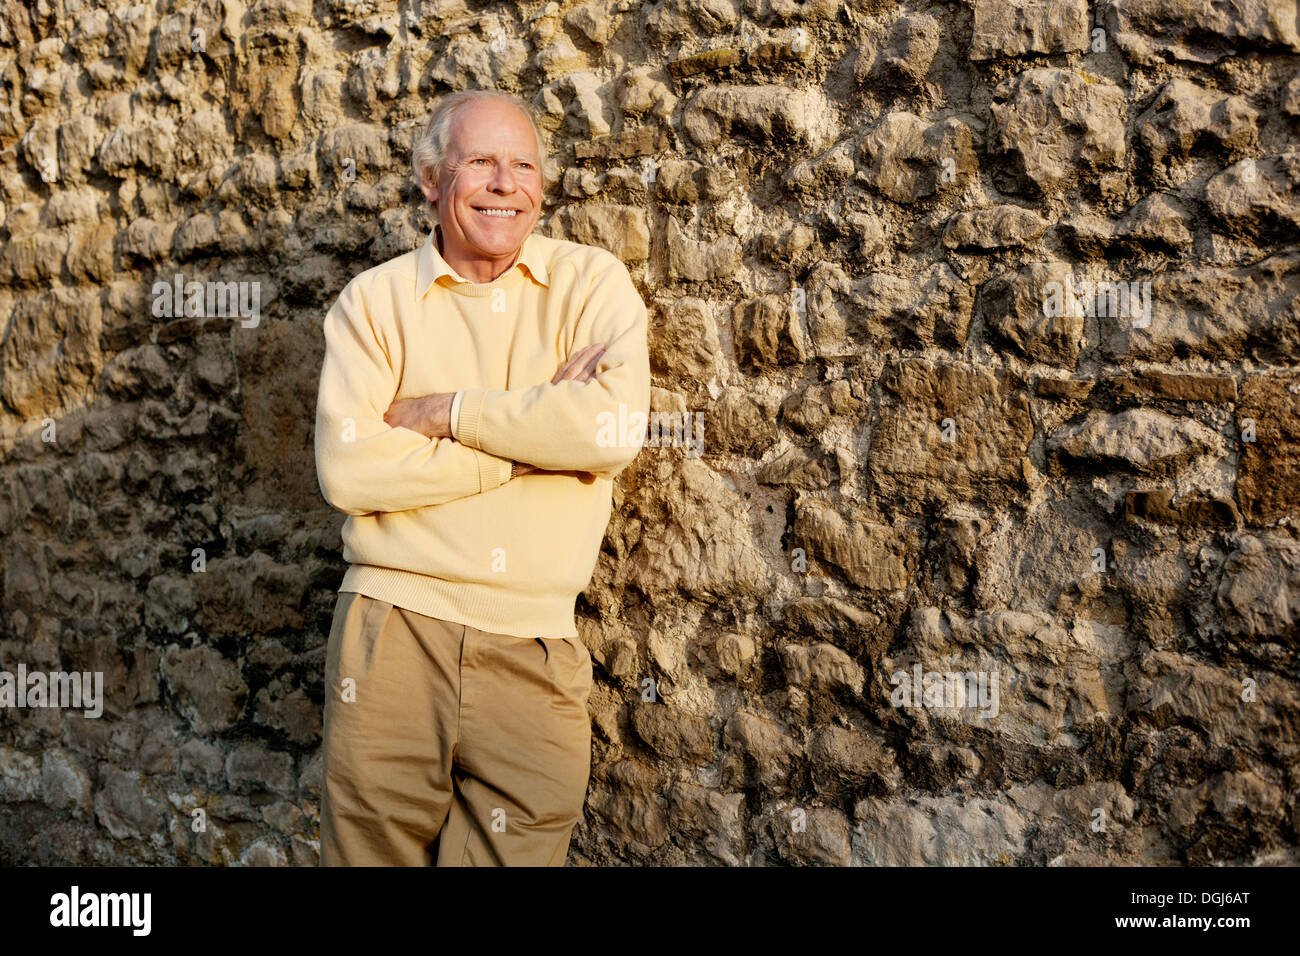 Senior man leaning against stone wall with arms crossed - Stock Image